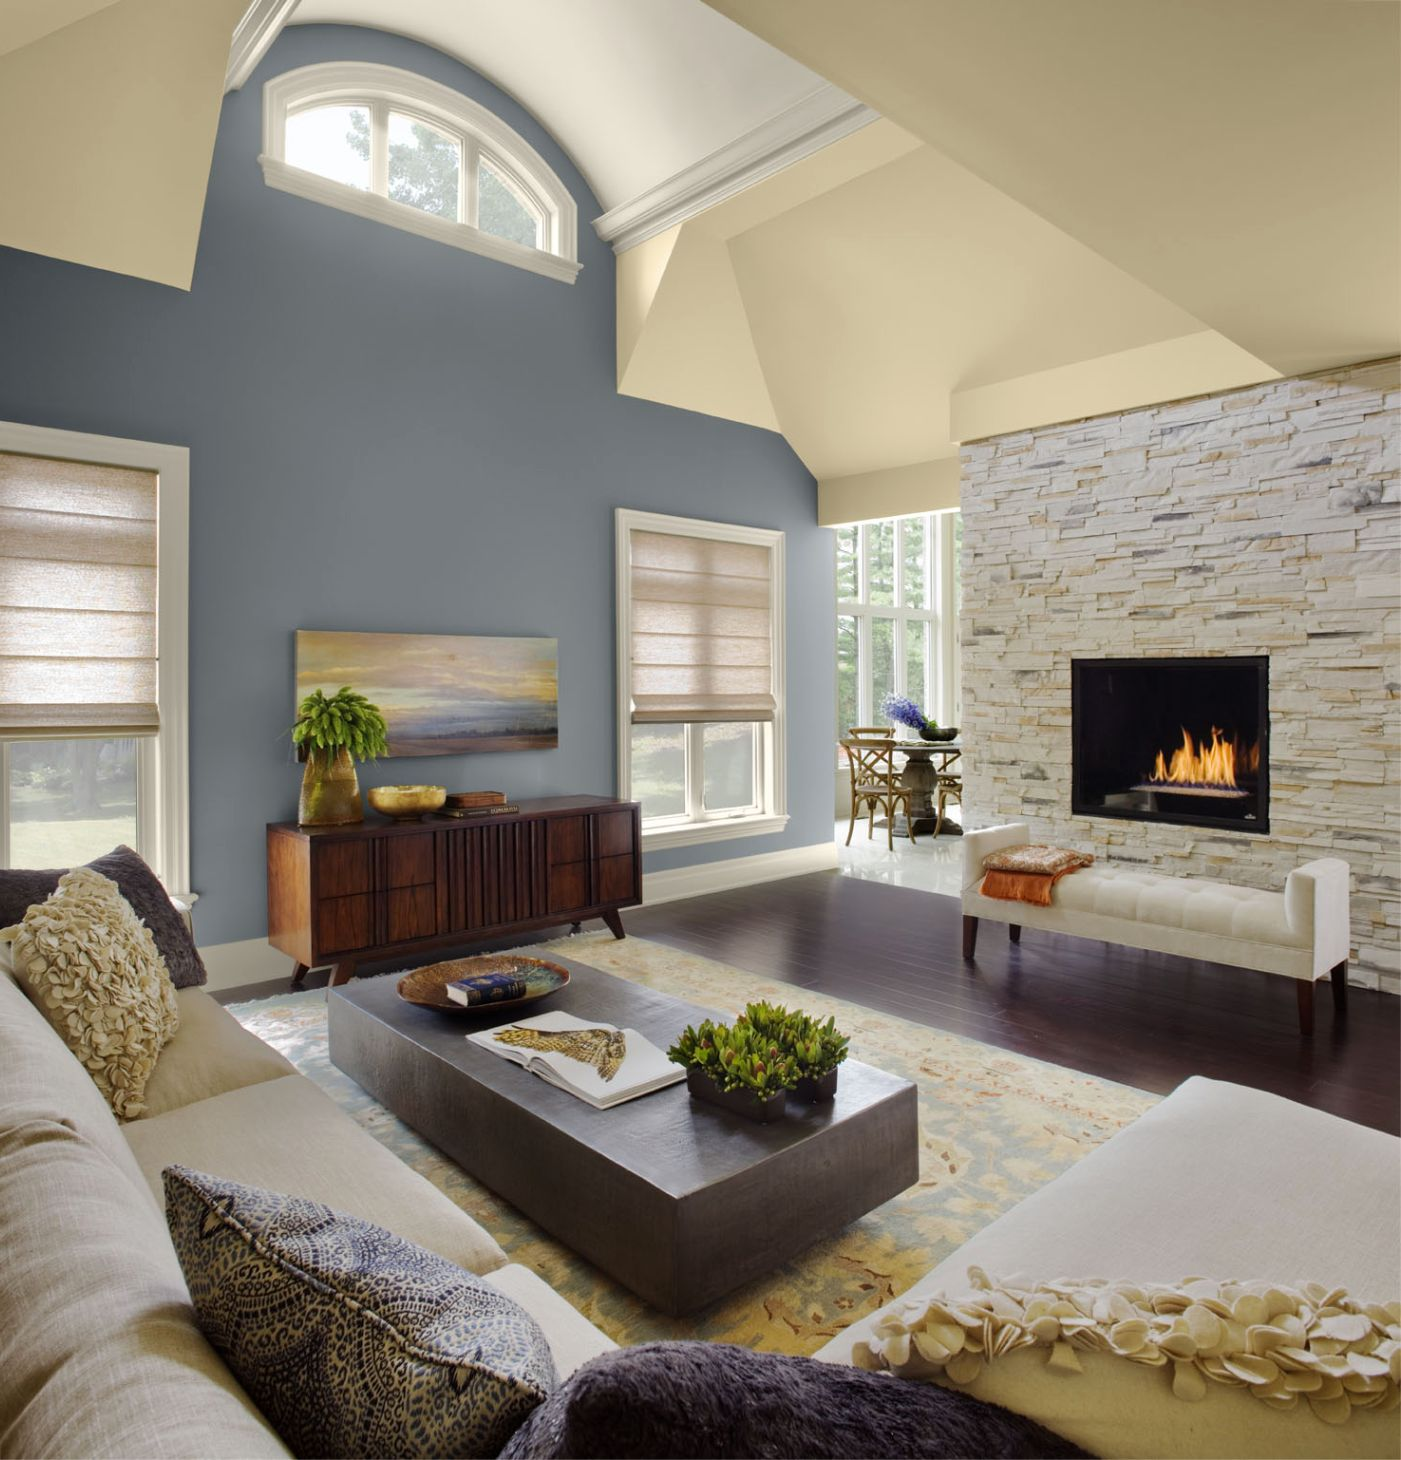 Stunning View Of Vaulted Ceiling Decorating Ideas For Homes